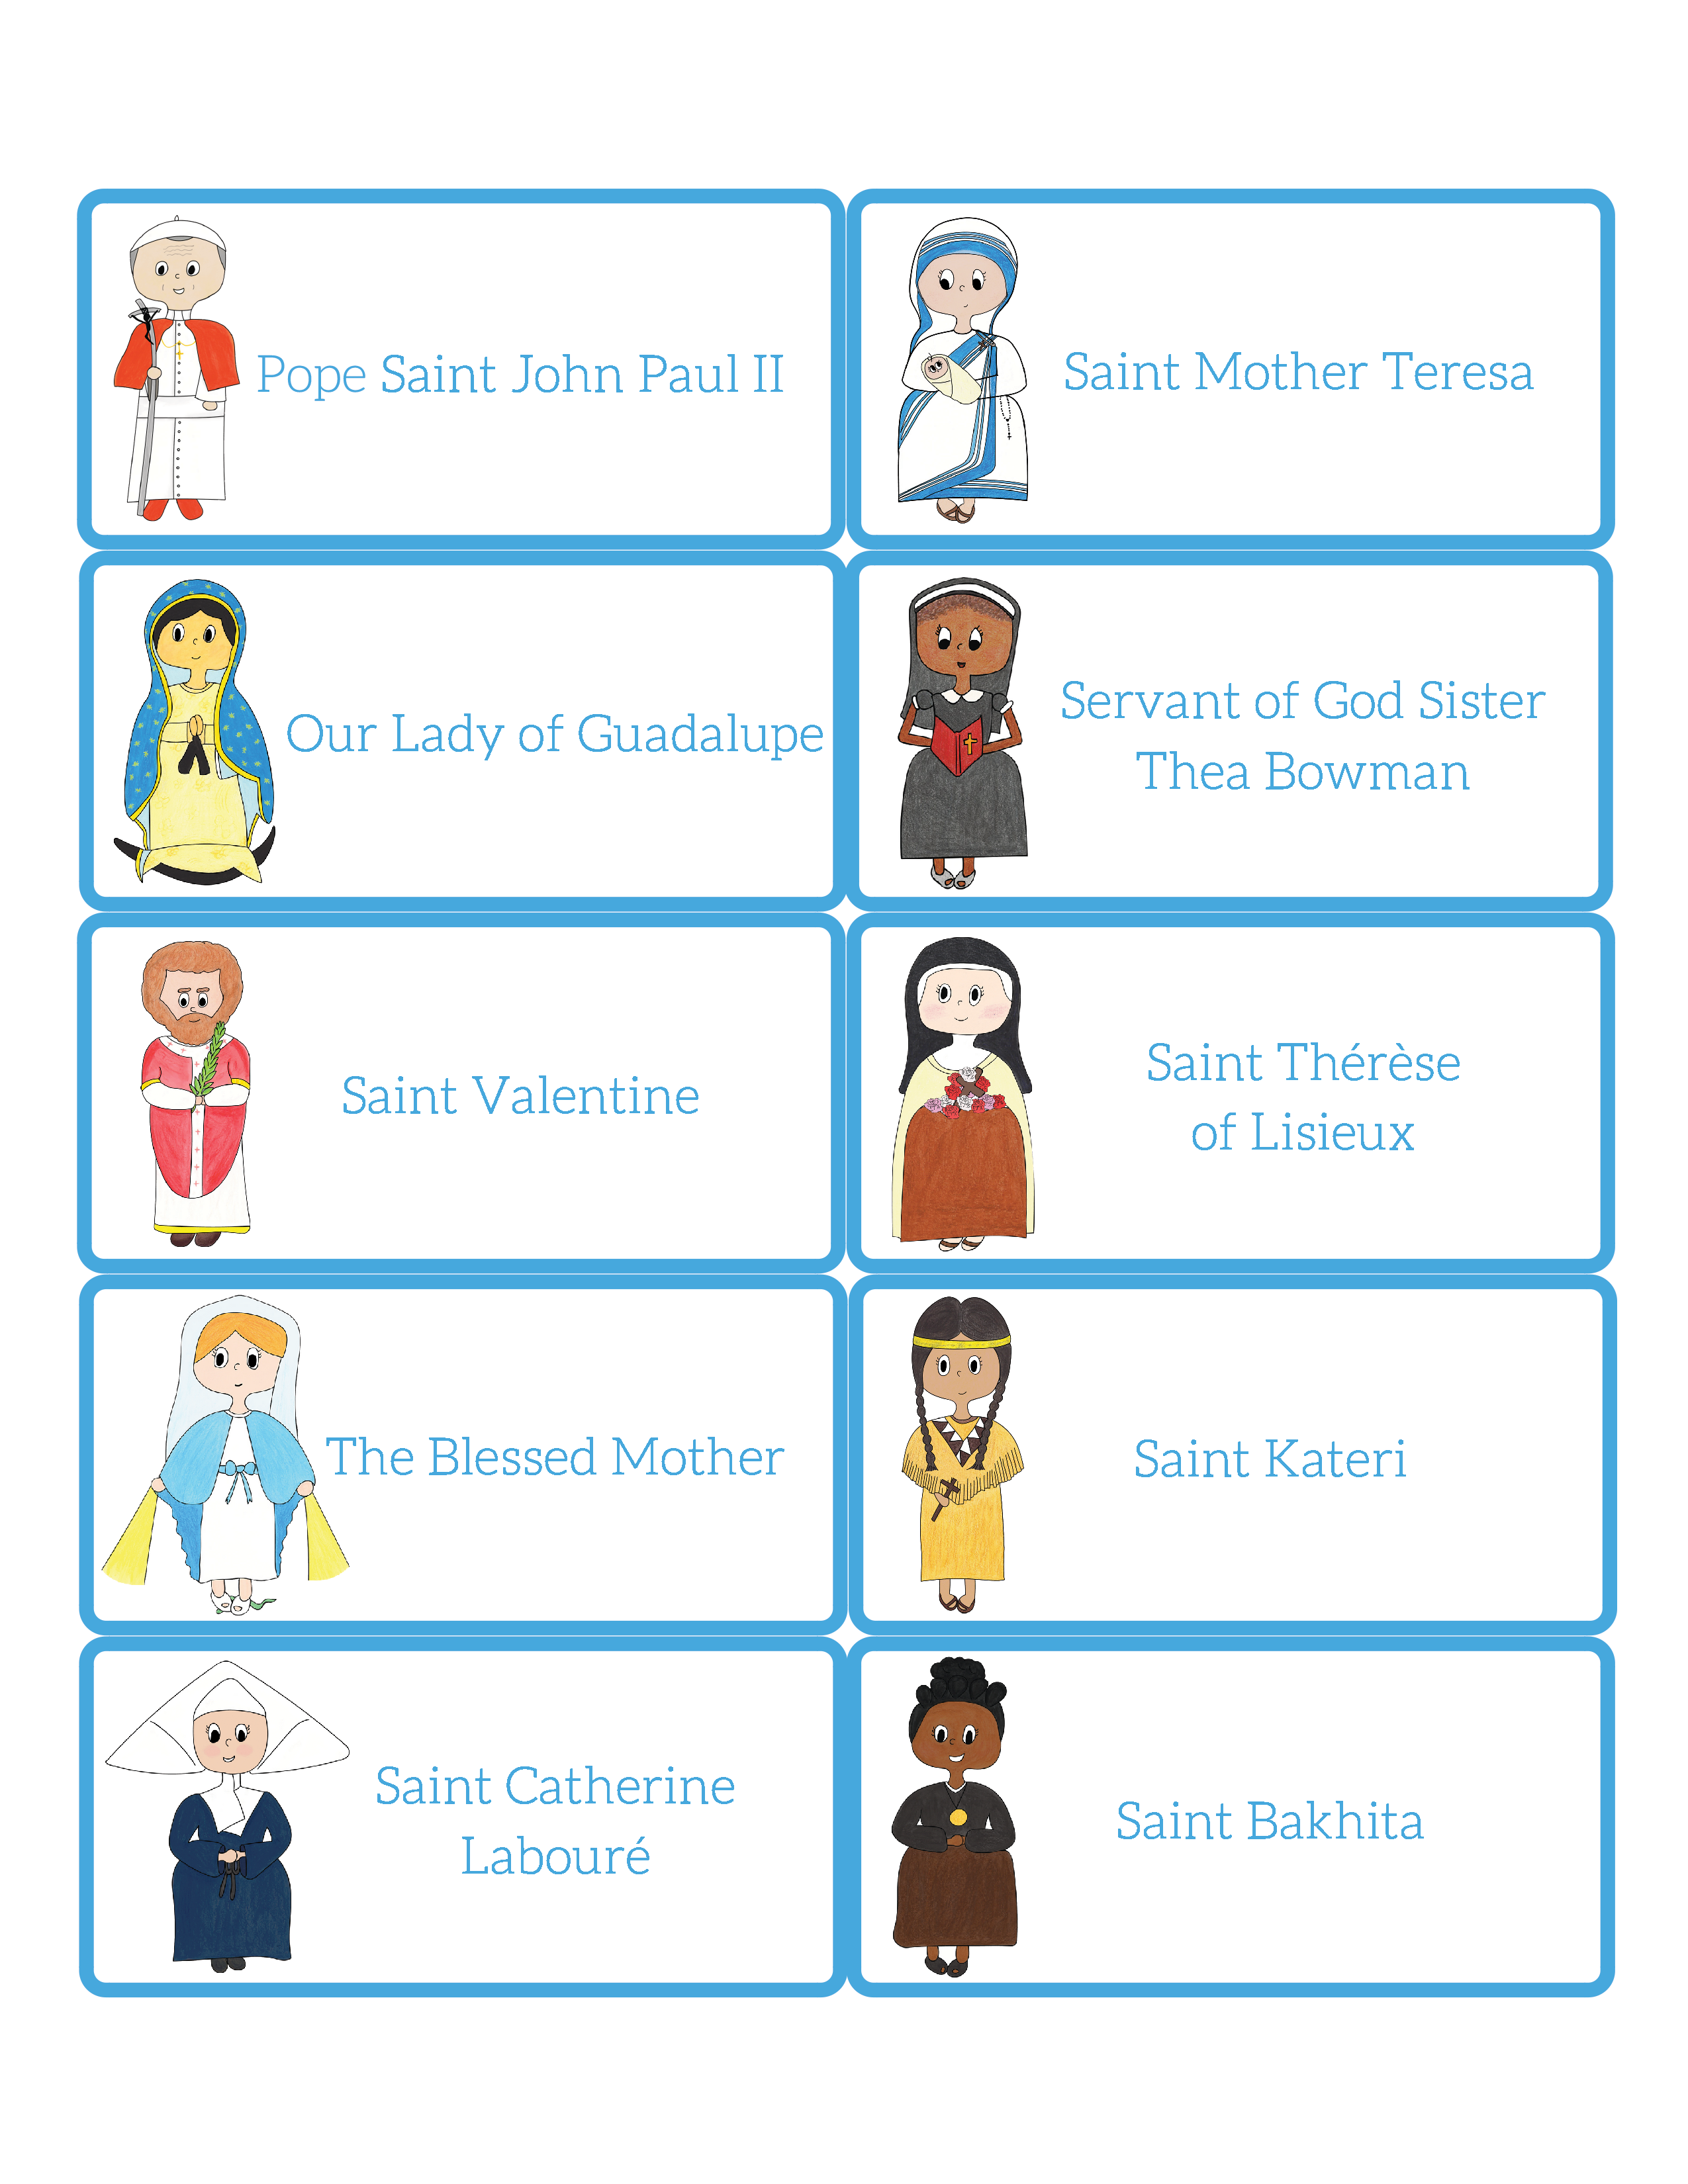 photograph relating to Free Printable Bible Bingo Cards referred to as Saint BINGO - My Catholic Youngsters